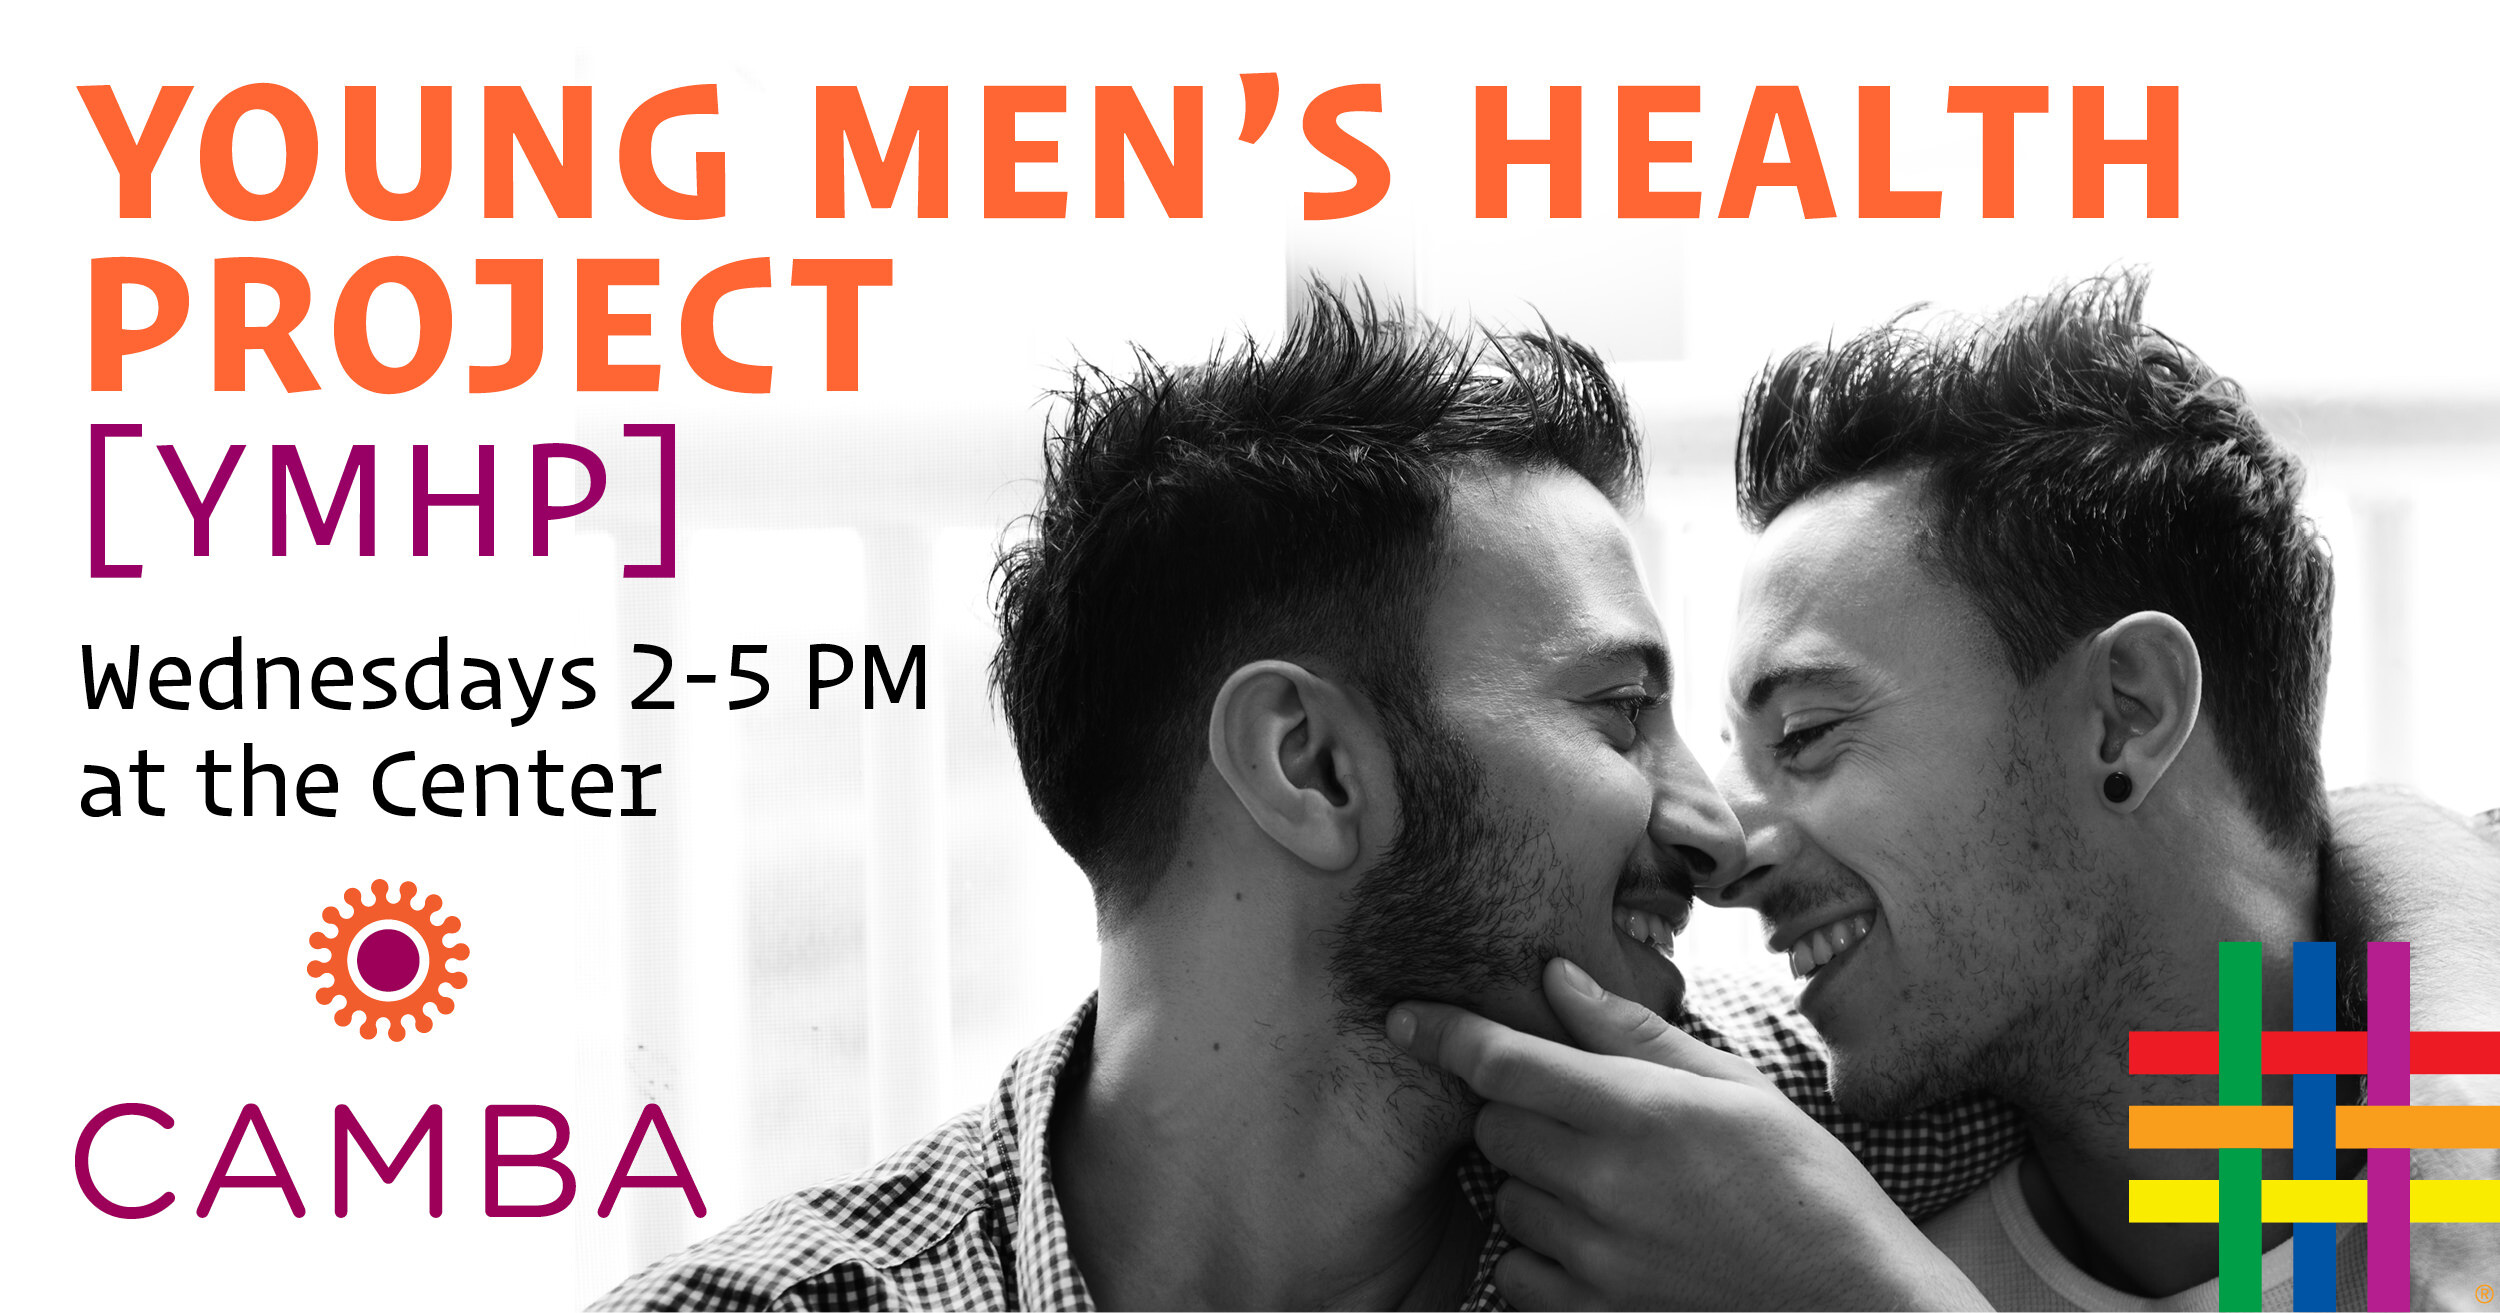 Young Men's Health Project (YMHP) at Brooklyn Community Pride Center